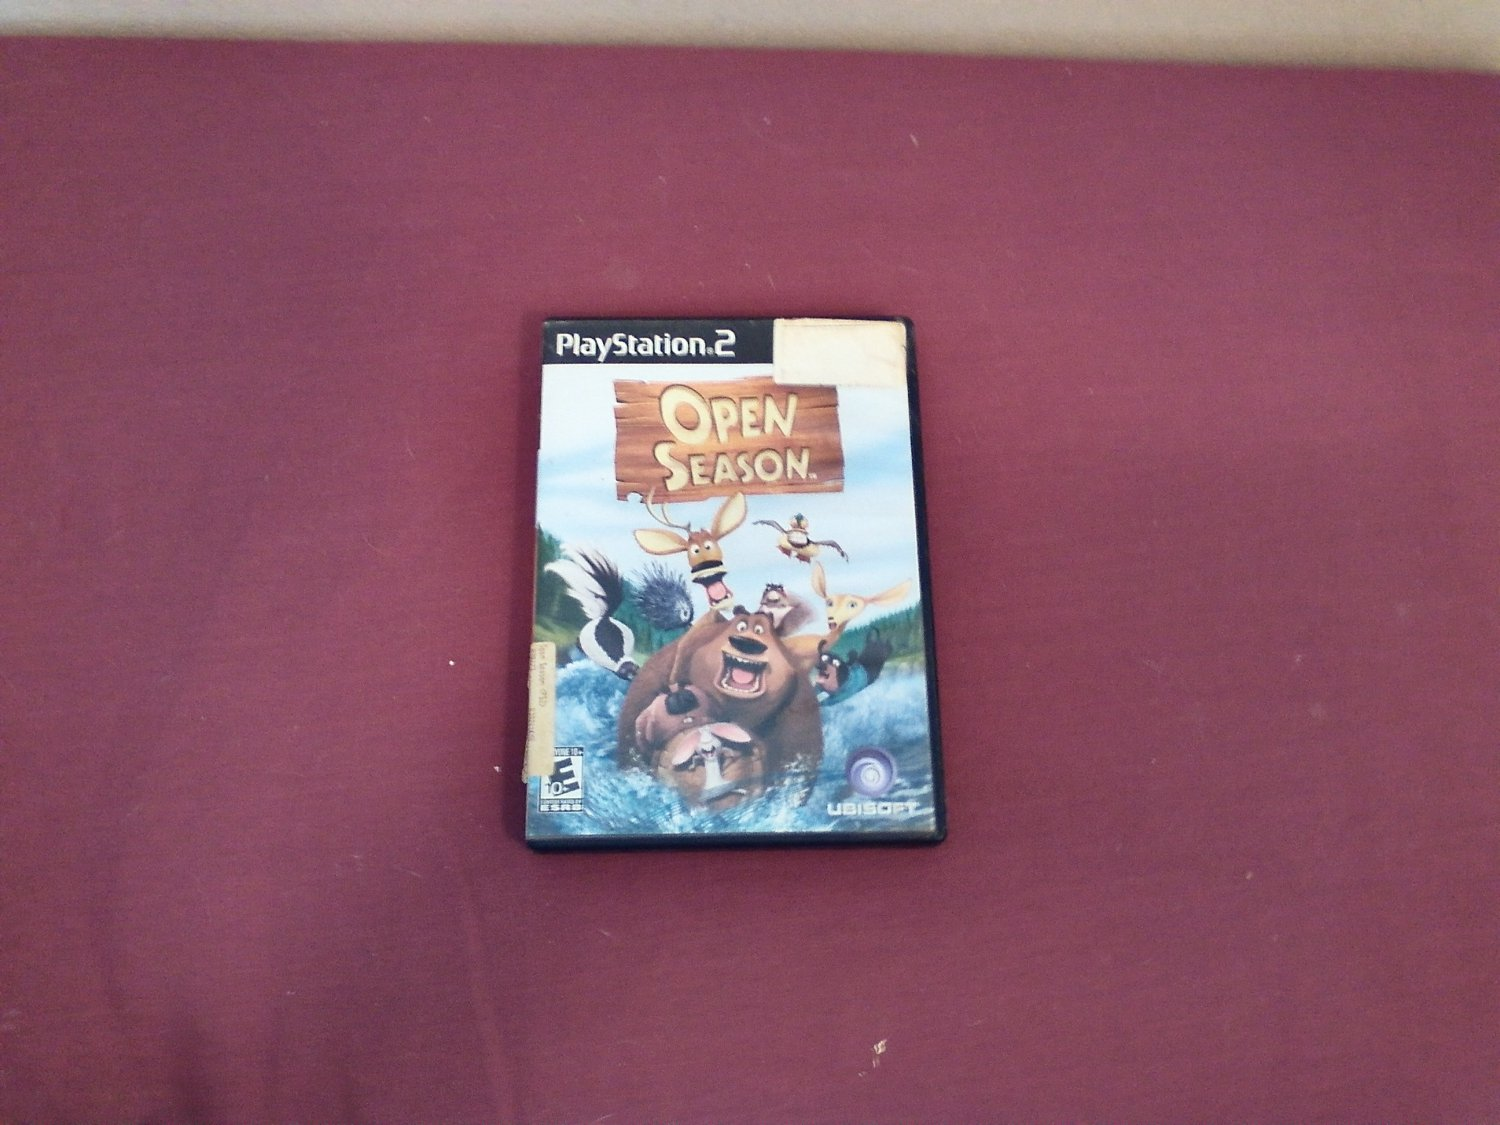 Open Season PS2 PlayStation 2, Rated E 10+ 2006 Sony Pictures Animation DVD Game (mw)